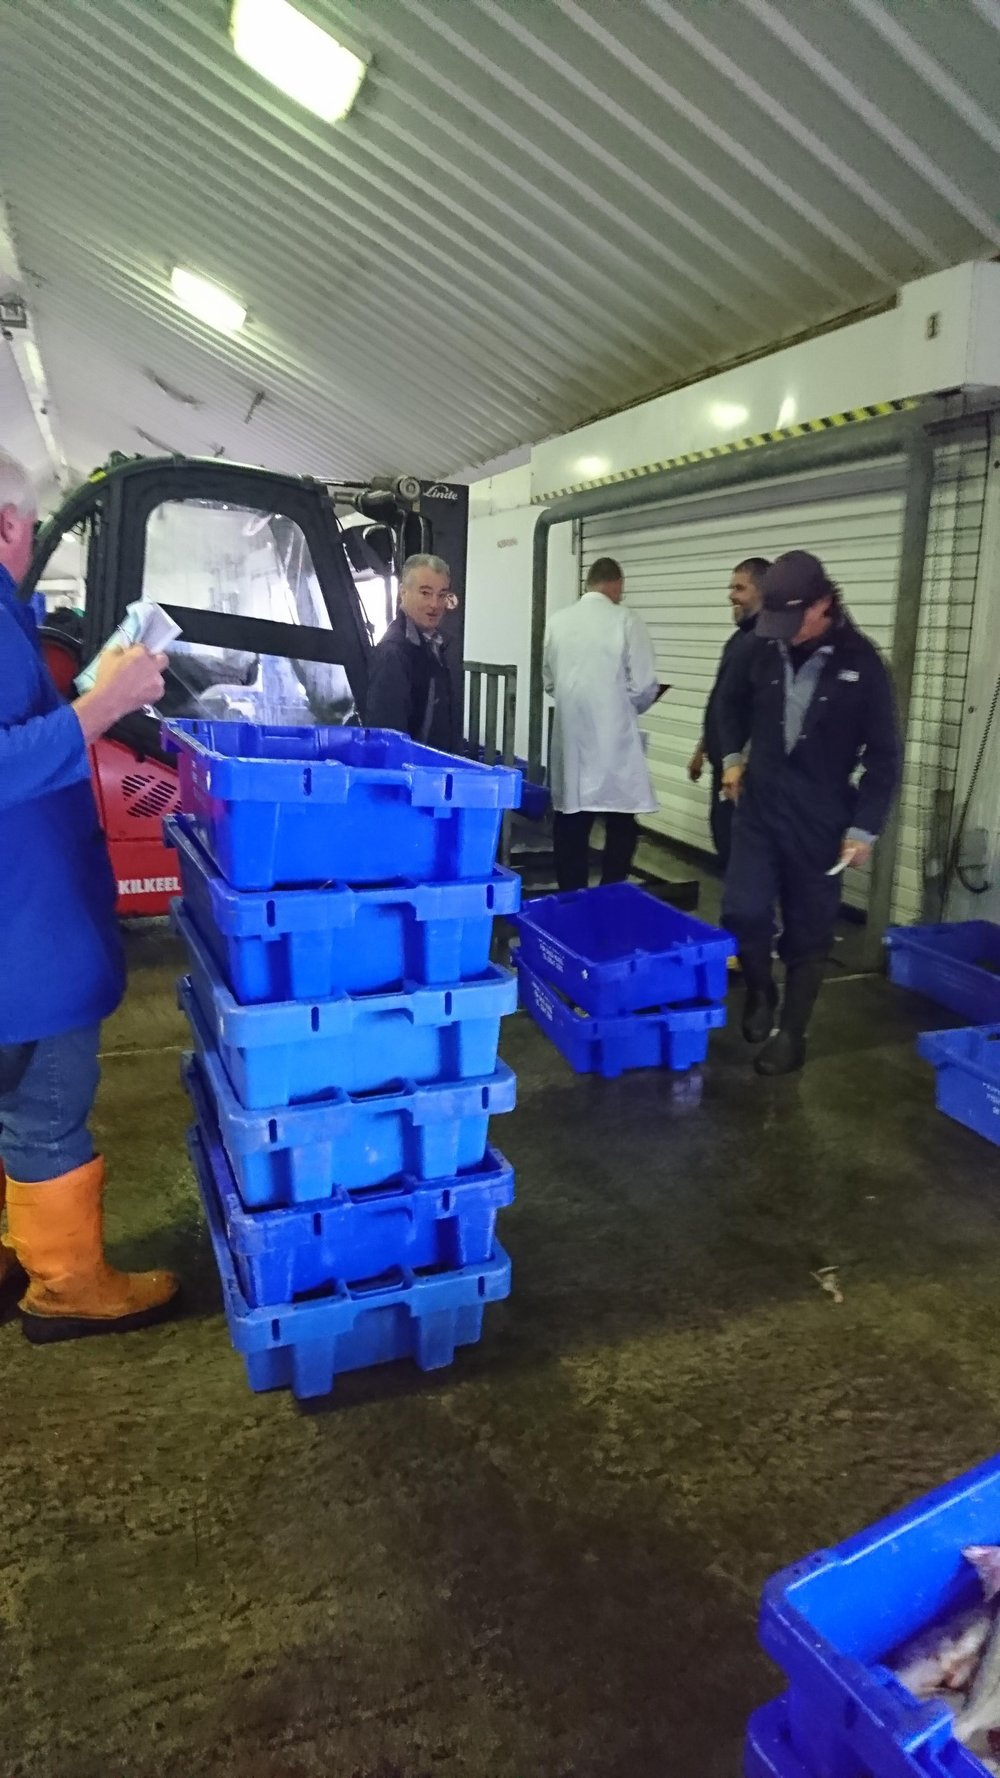 3. FISH MARKET   Once the catch is landed, it is stored in the chilled fish market until the auction. The fish market is located on the quay side of Kilkeel Harbour. The abundance of great quality fish each week indicates that our local fishing industry is going from strength to strength. The success of Sea Source shows we have been working hard to ensure our fishermen get a fair price for their catch.